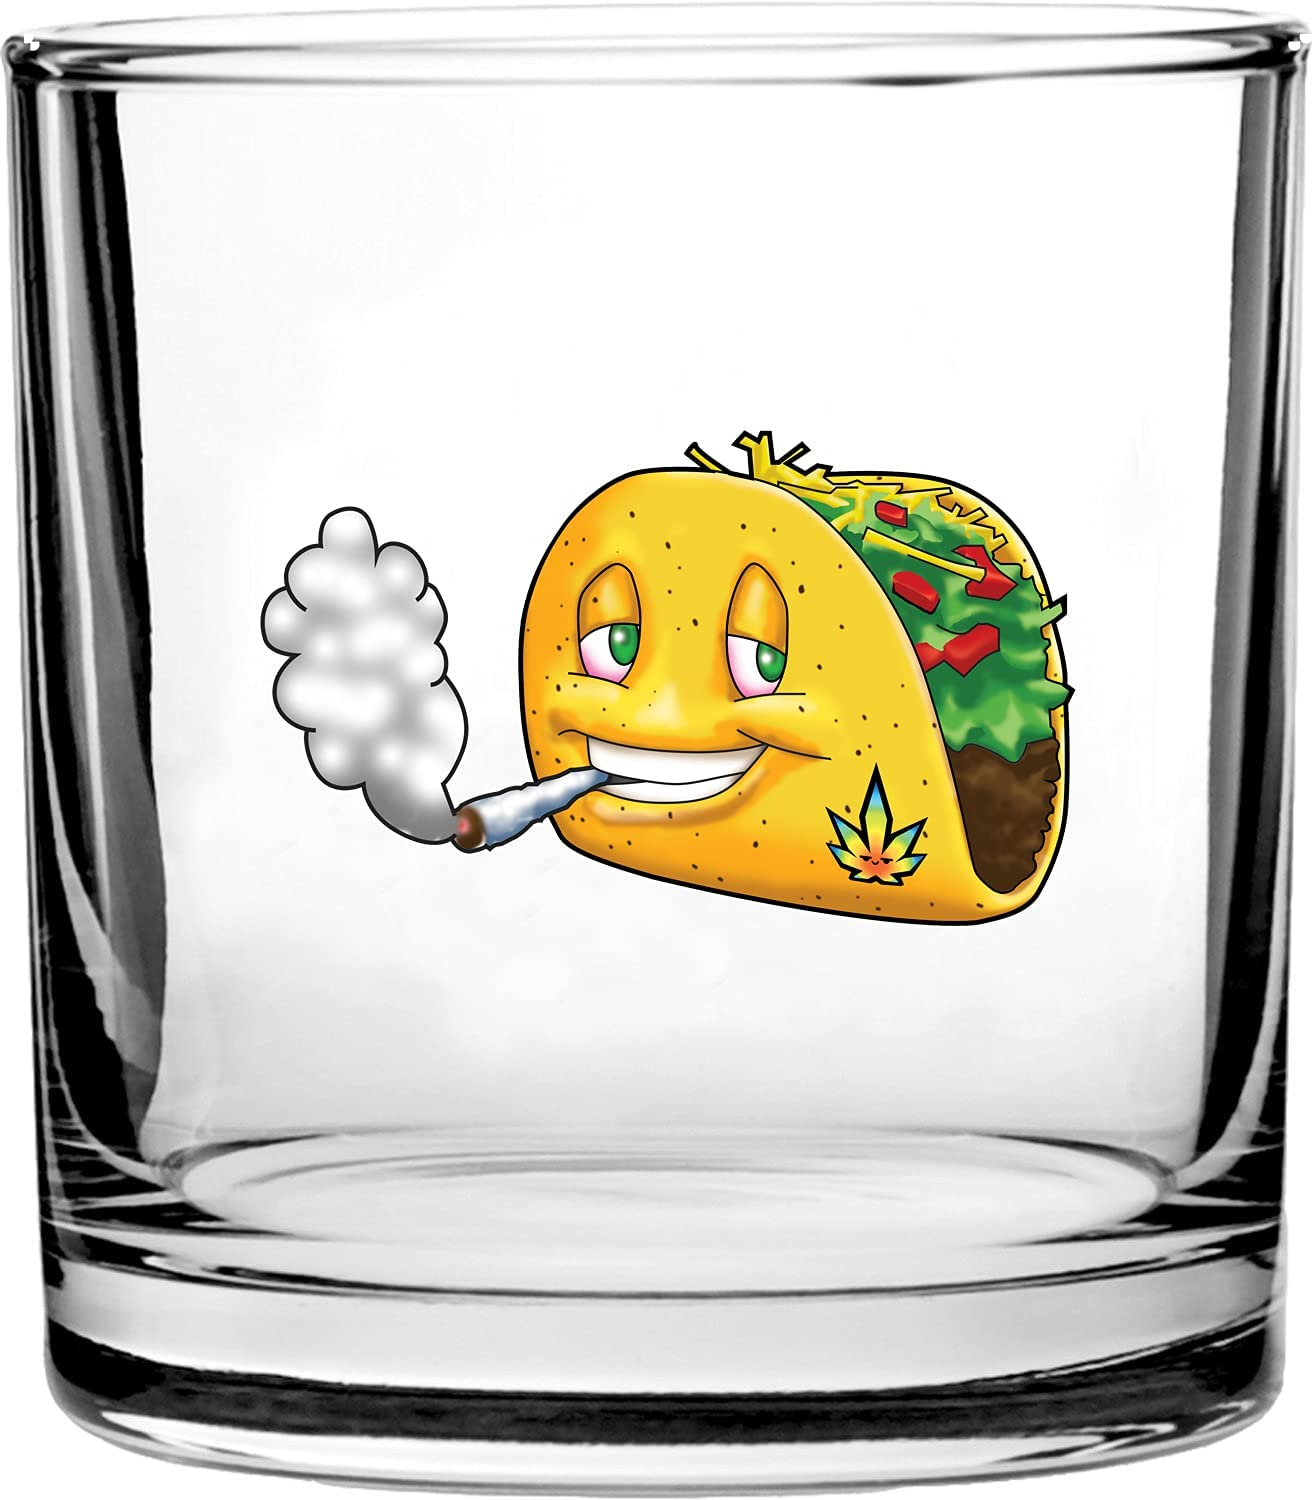 Pot Max 83% OFF Save money Smoking Pals - Smokin' Lettuce S Topping Taco Devil's